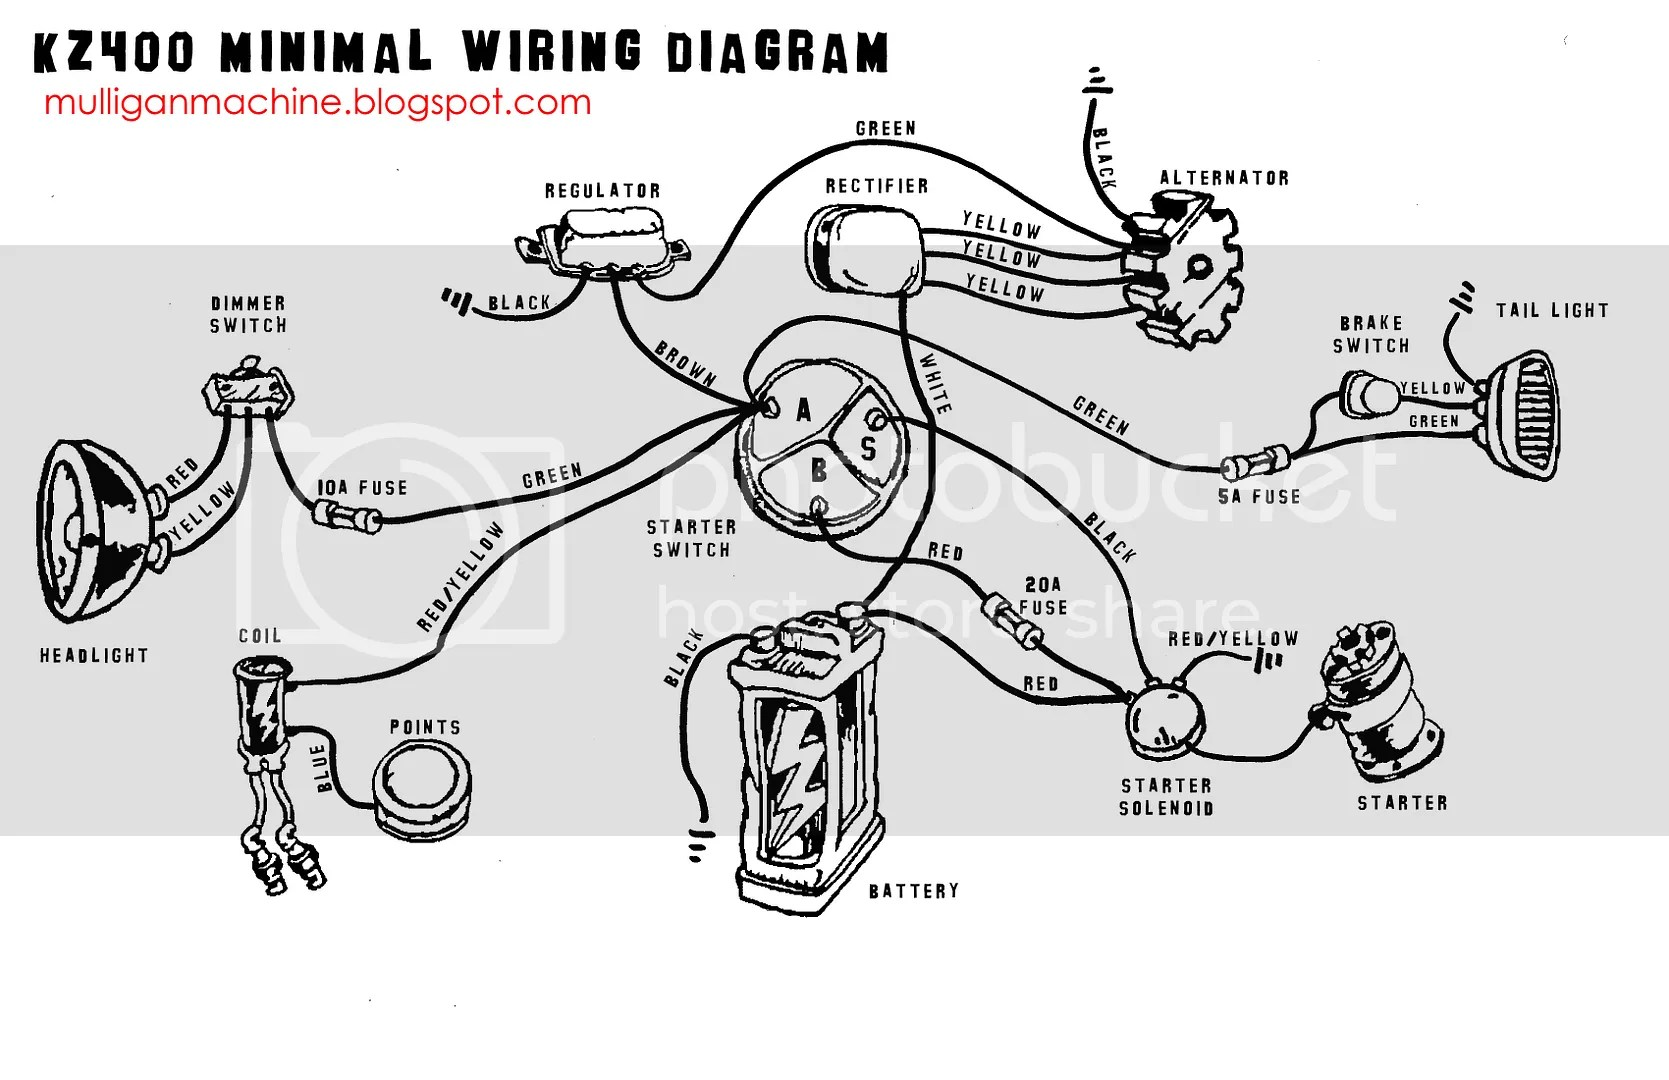 Will This Diagram Work For A Kz400